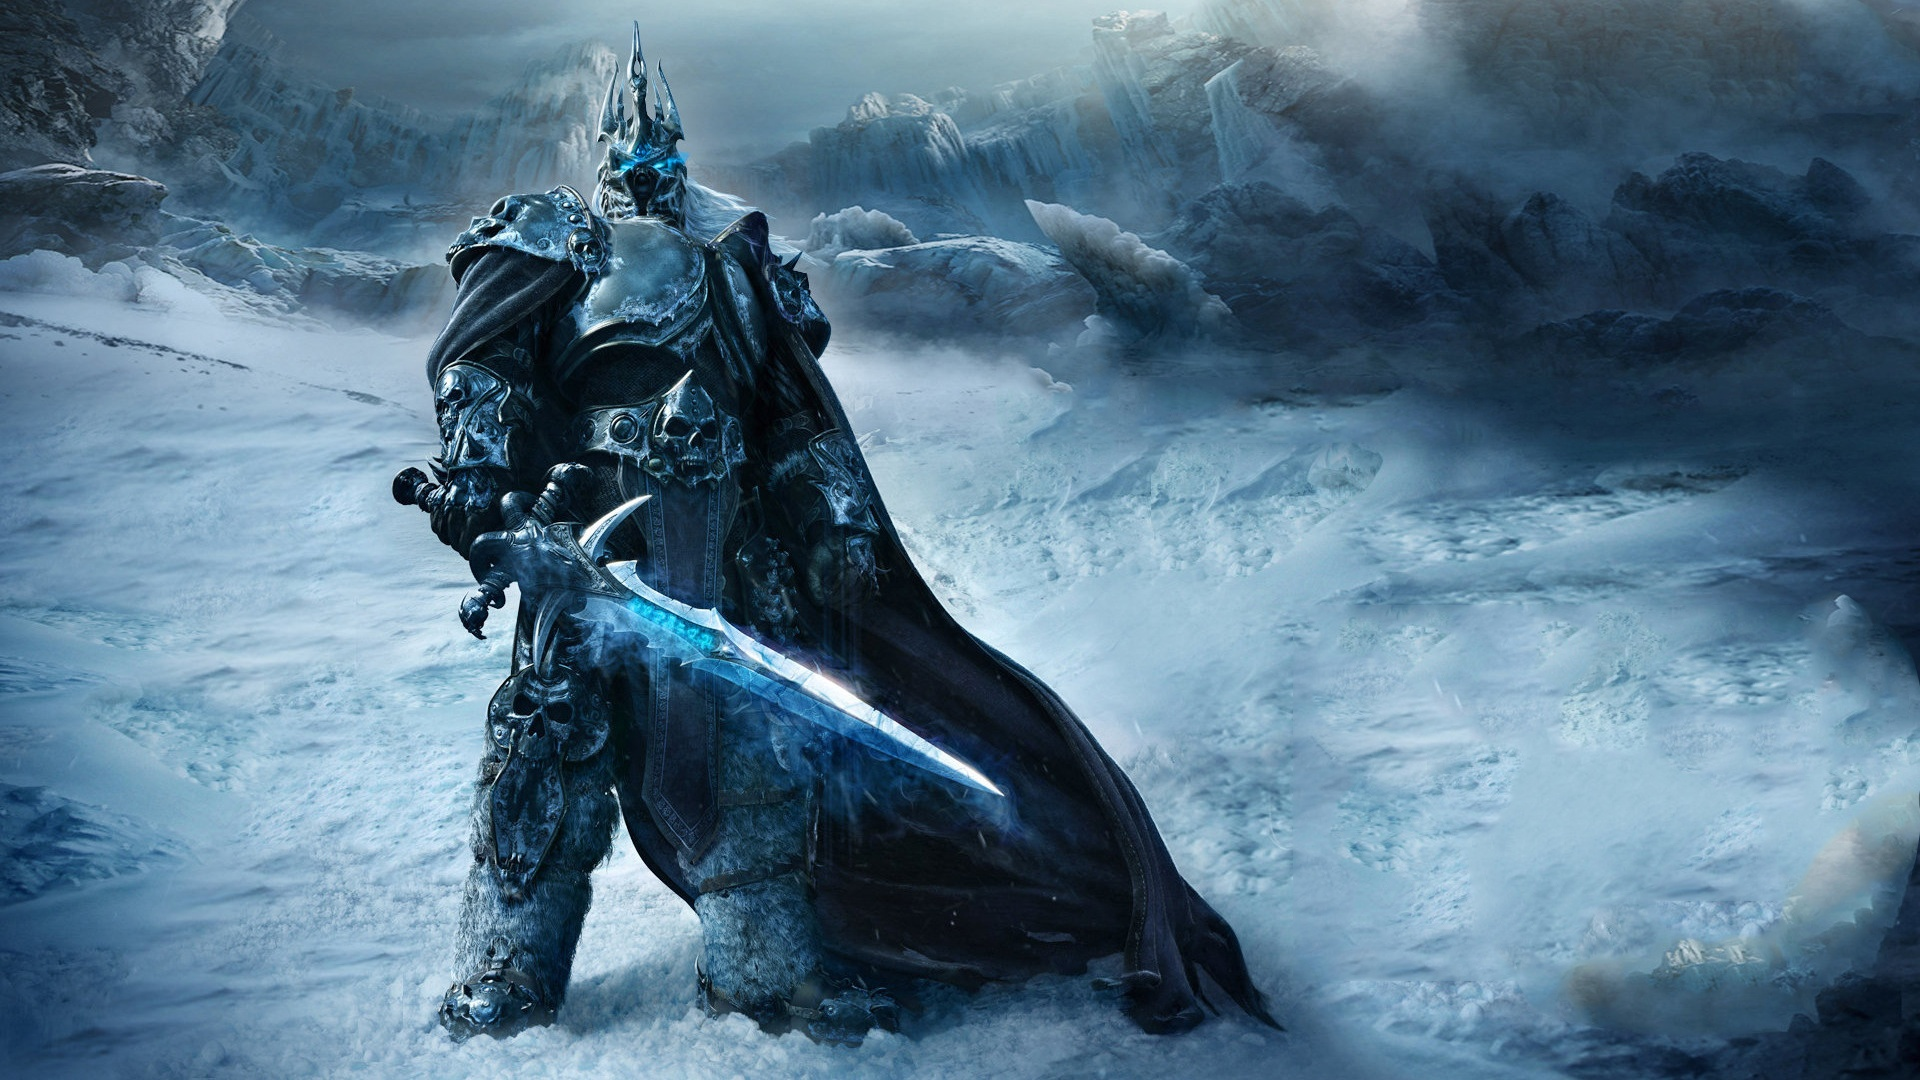 World of Warcraft Wrath of the Lich King Wallpapers HD Wallpapers 1920x1080